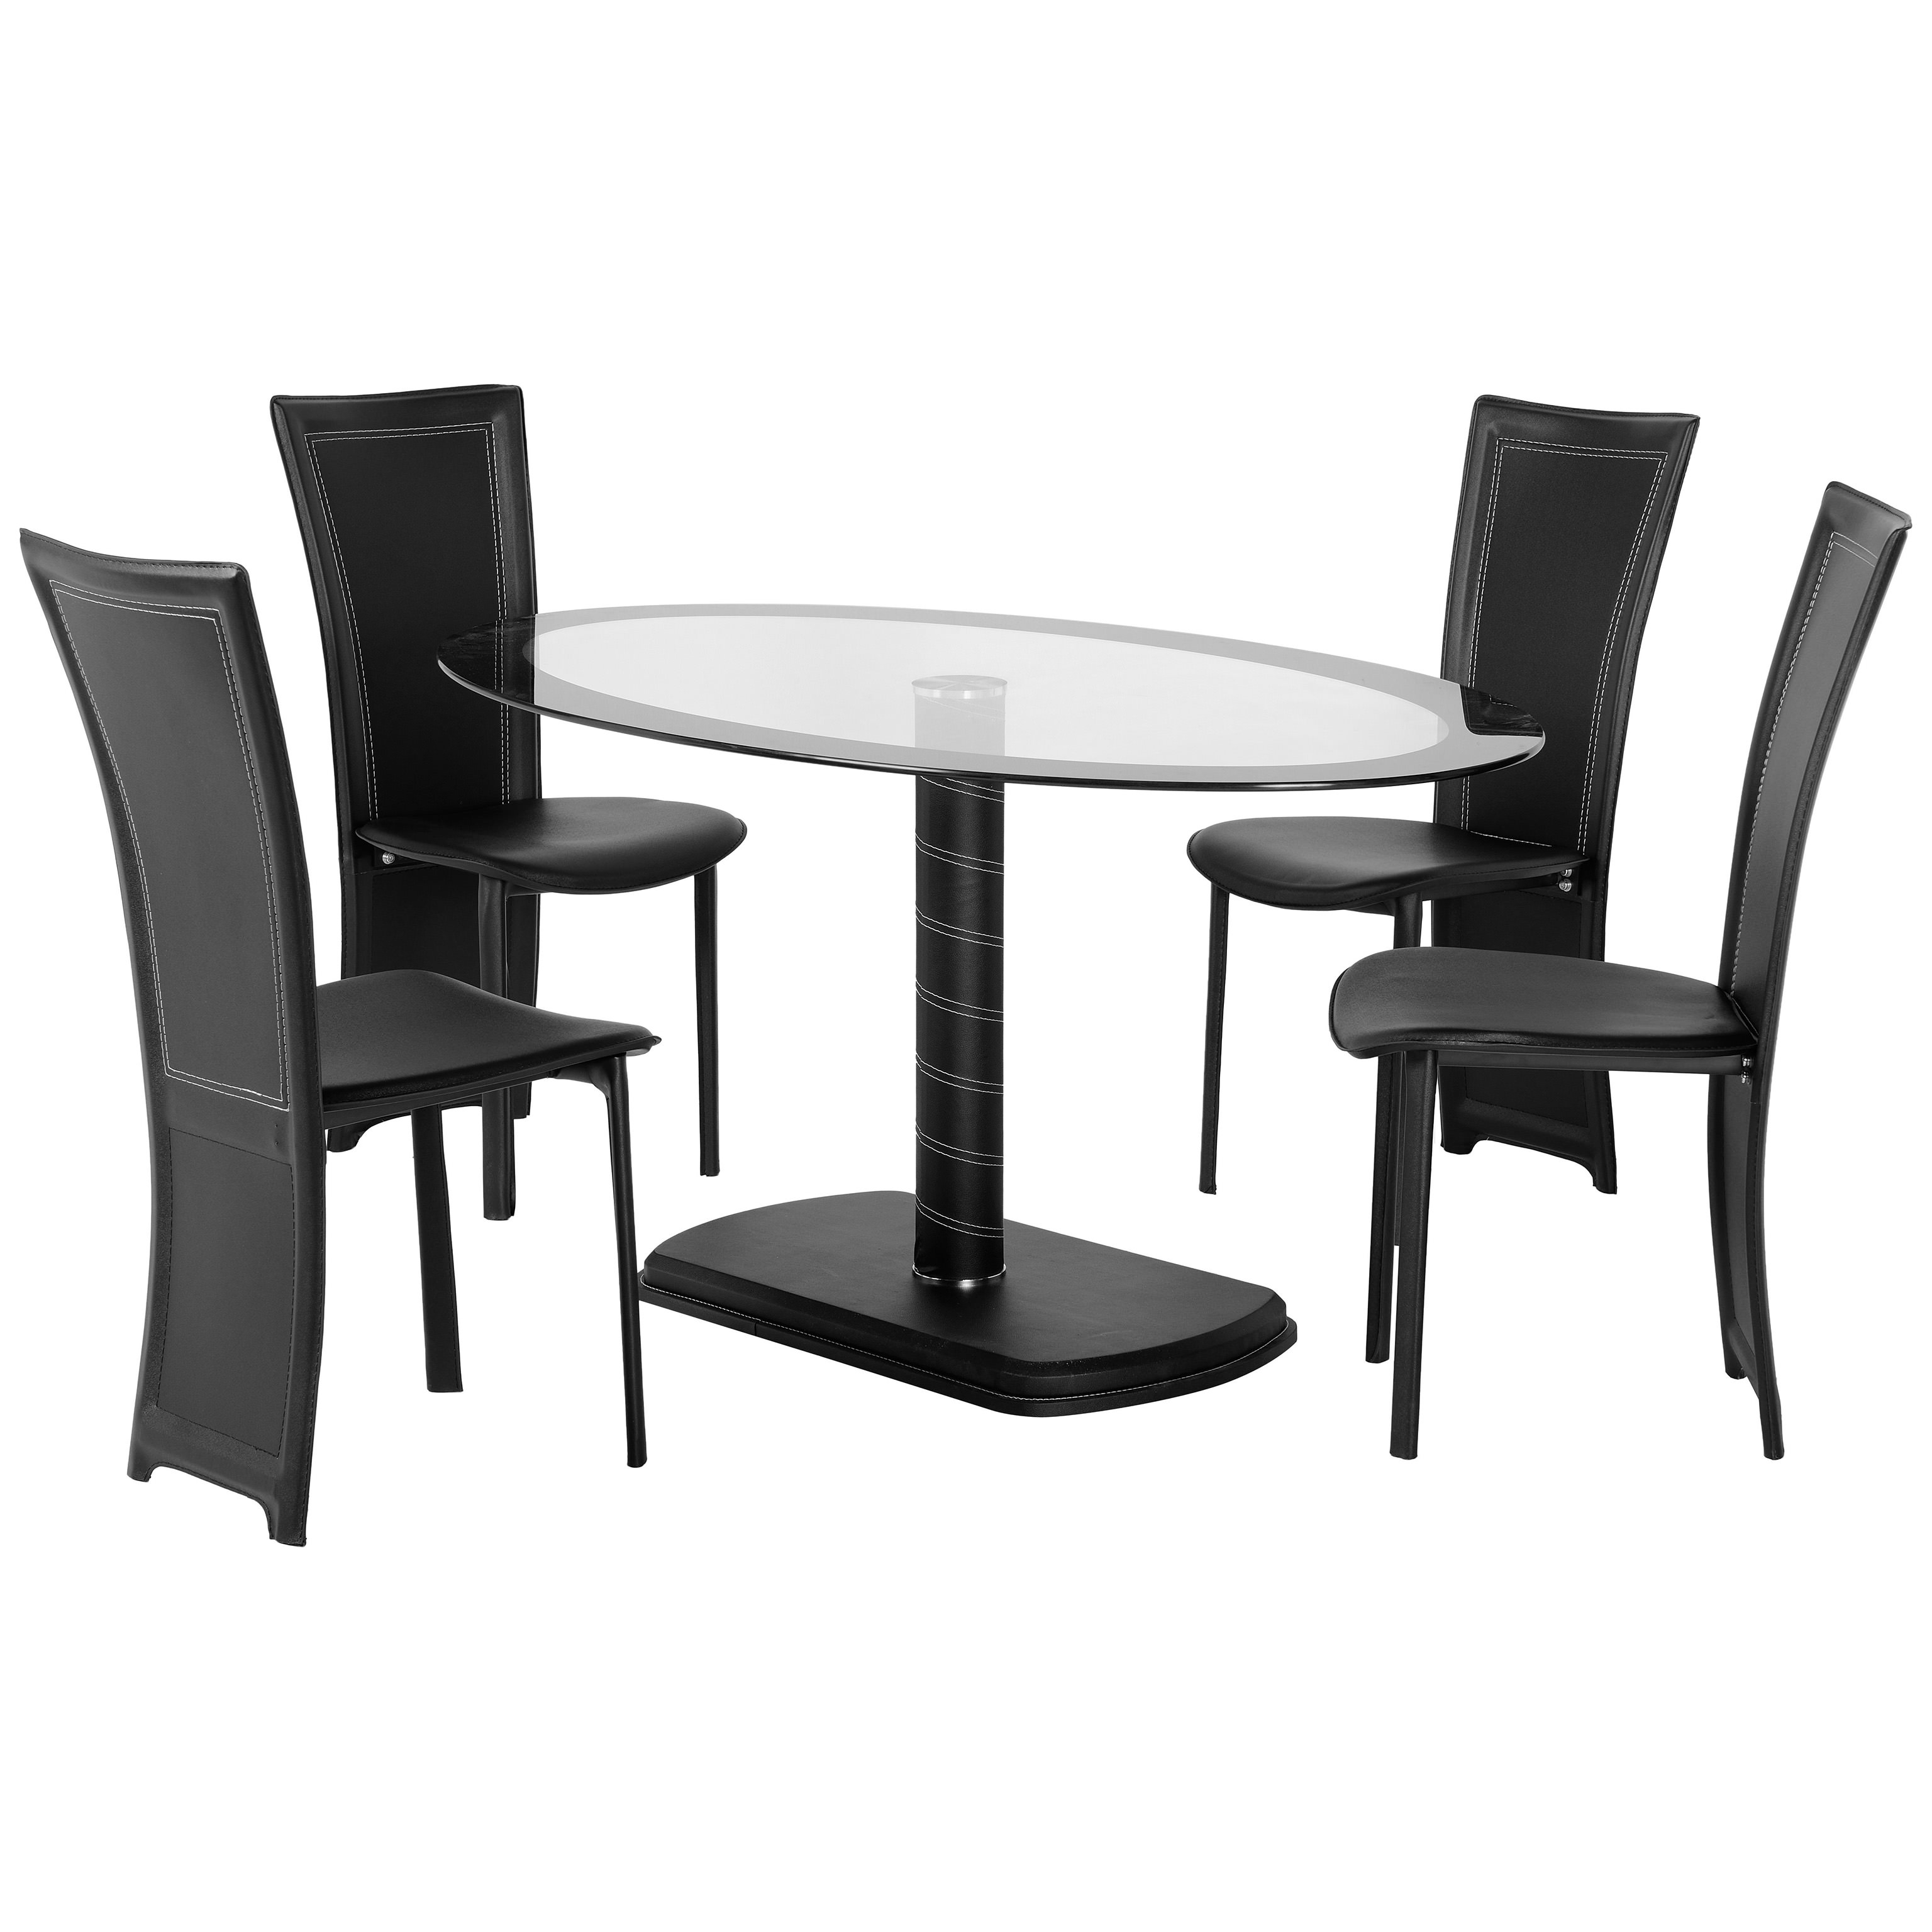 Details About Black & Clear Glass Oval Dining Table And Chair Set With 4  Leather Seats In Favorite Clear Glass Dining Tables And Chairs (View 10 of 25)